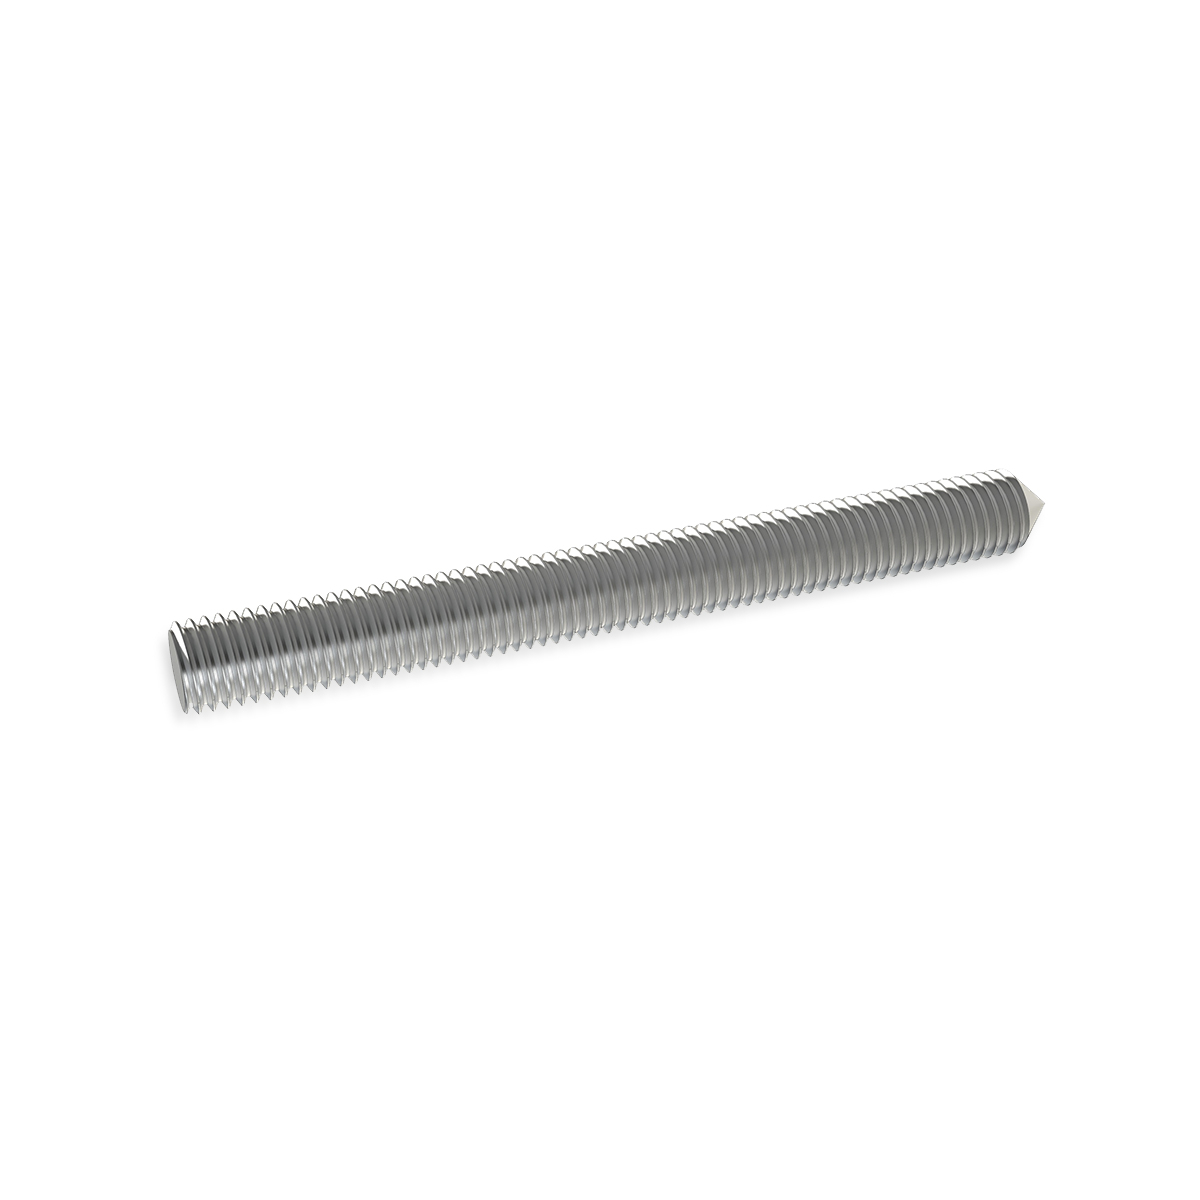 1/4'' Diameter X 5'' Long, Aluminum 1/4-20 Threaded Stud (1 End Flat - 1 End Conical)